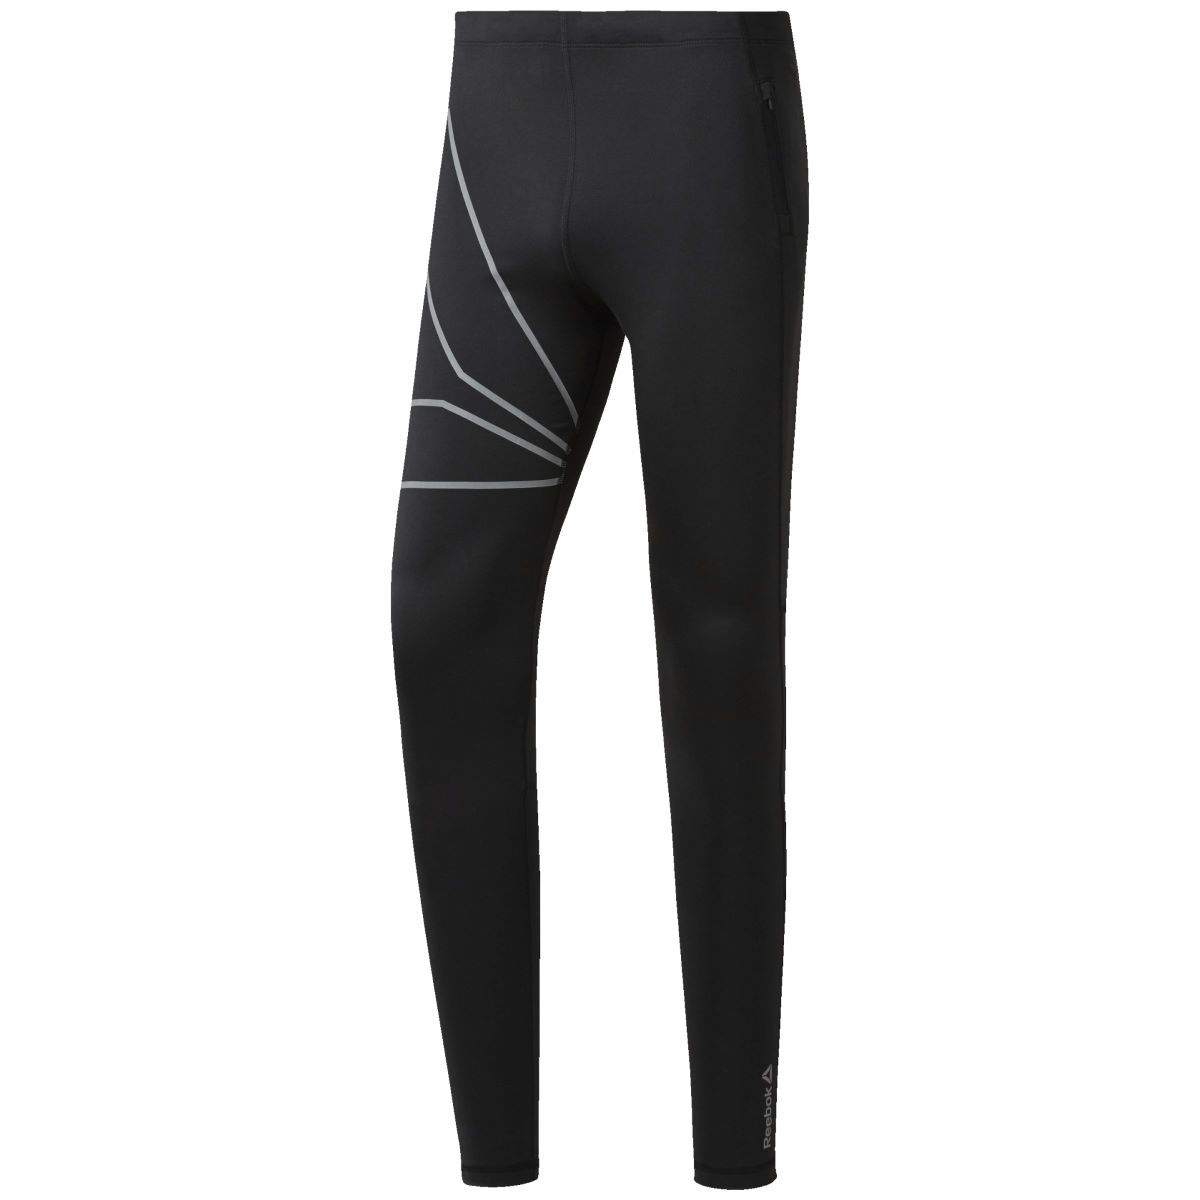 Reebok One Series Tight - S Black/Reflective | Running Tights